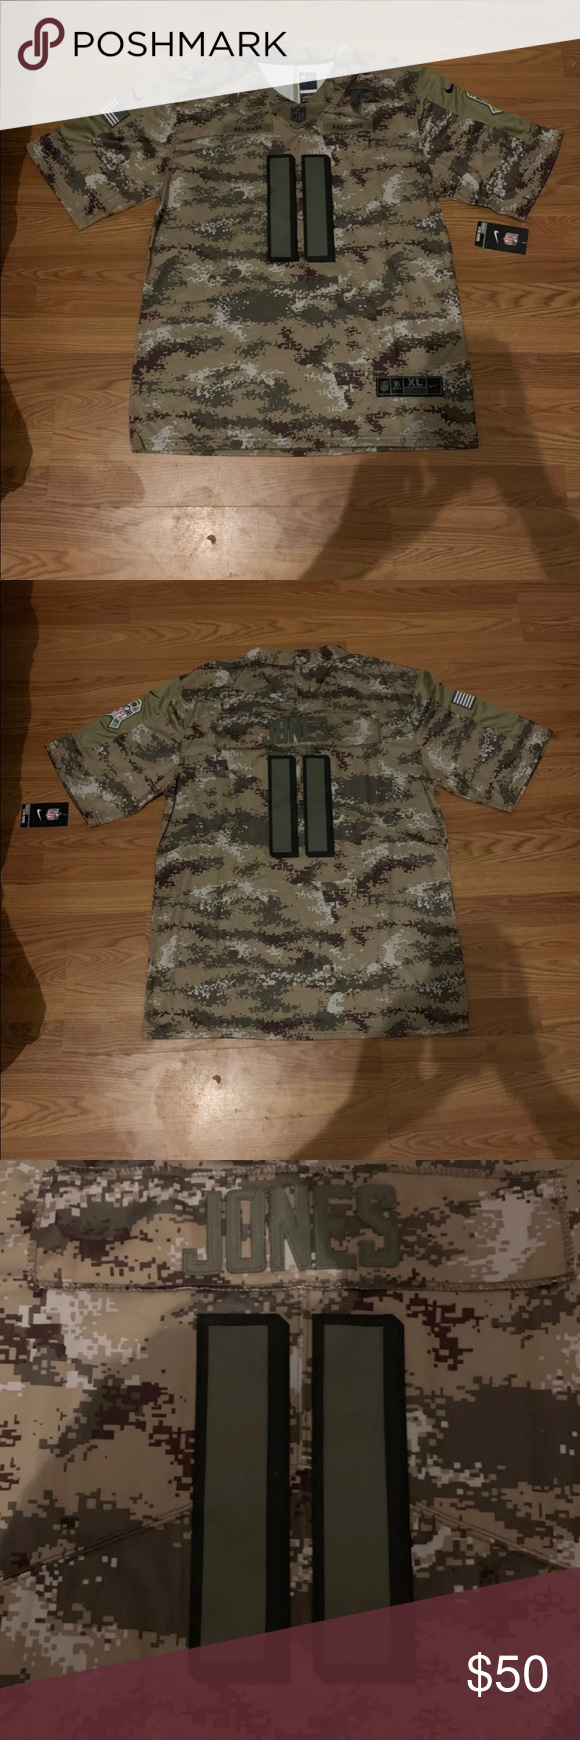 Julio Jones salute to service Jersey Stitched, Julio Jones salute to service Jersey size XL NWT.  If you would like a different player, just message who you would like and the size. Nike Shirts Tees - Short Sleeve #salutetoservice